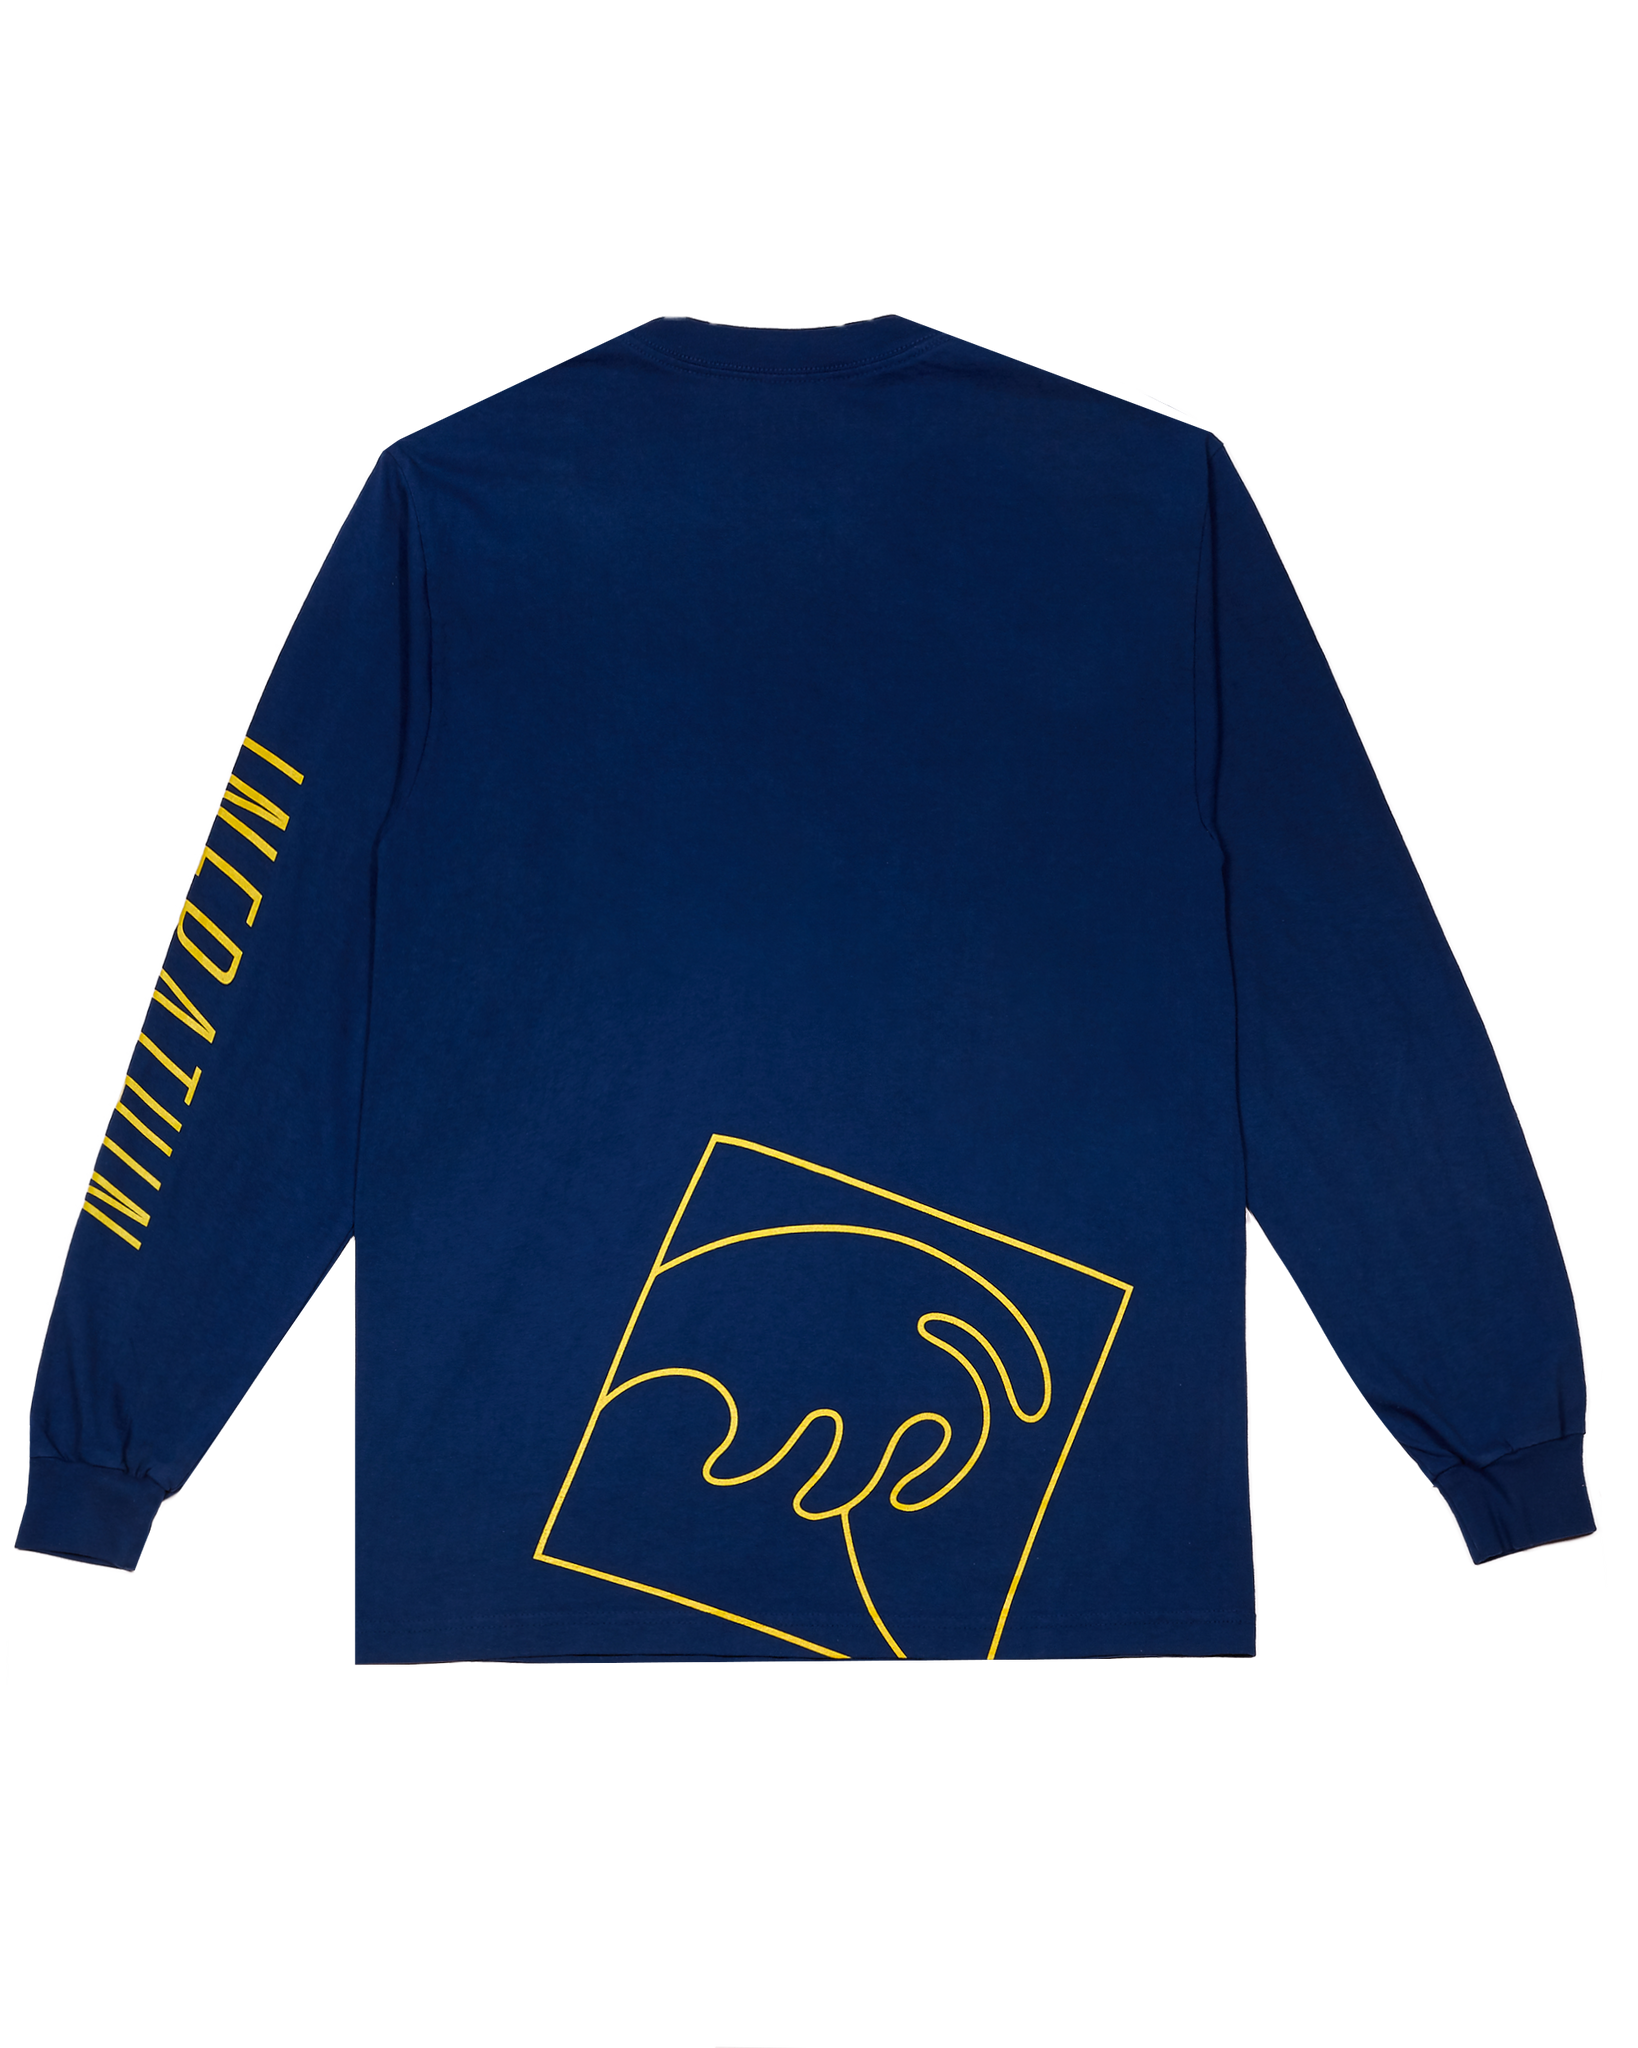 NAVY LONG SLEEVE WITH YELLOW LOGO AND WAVE